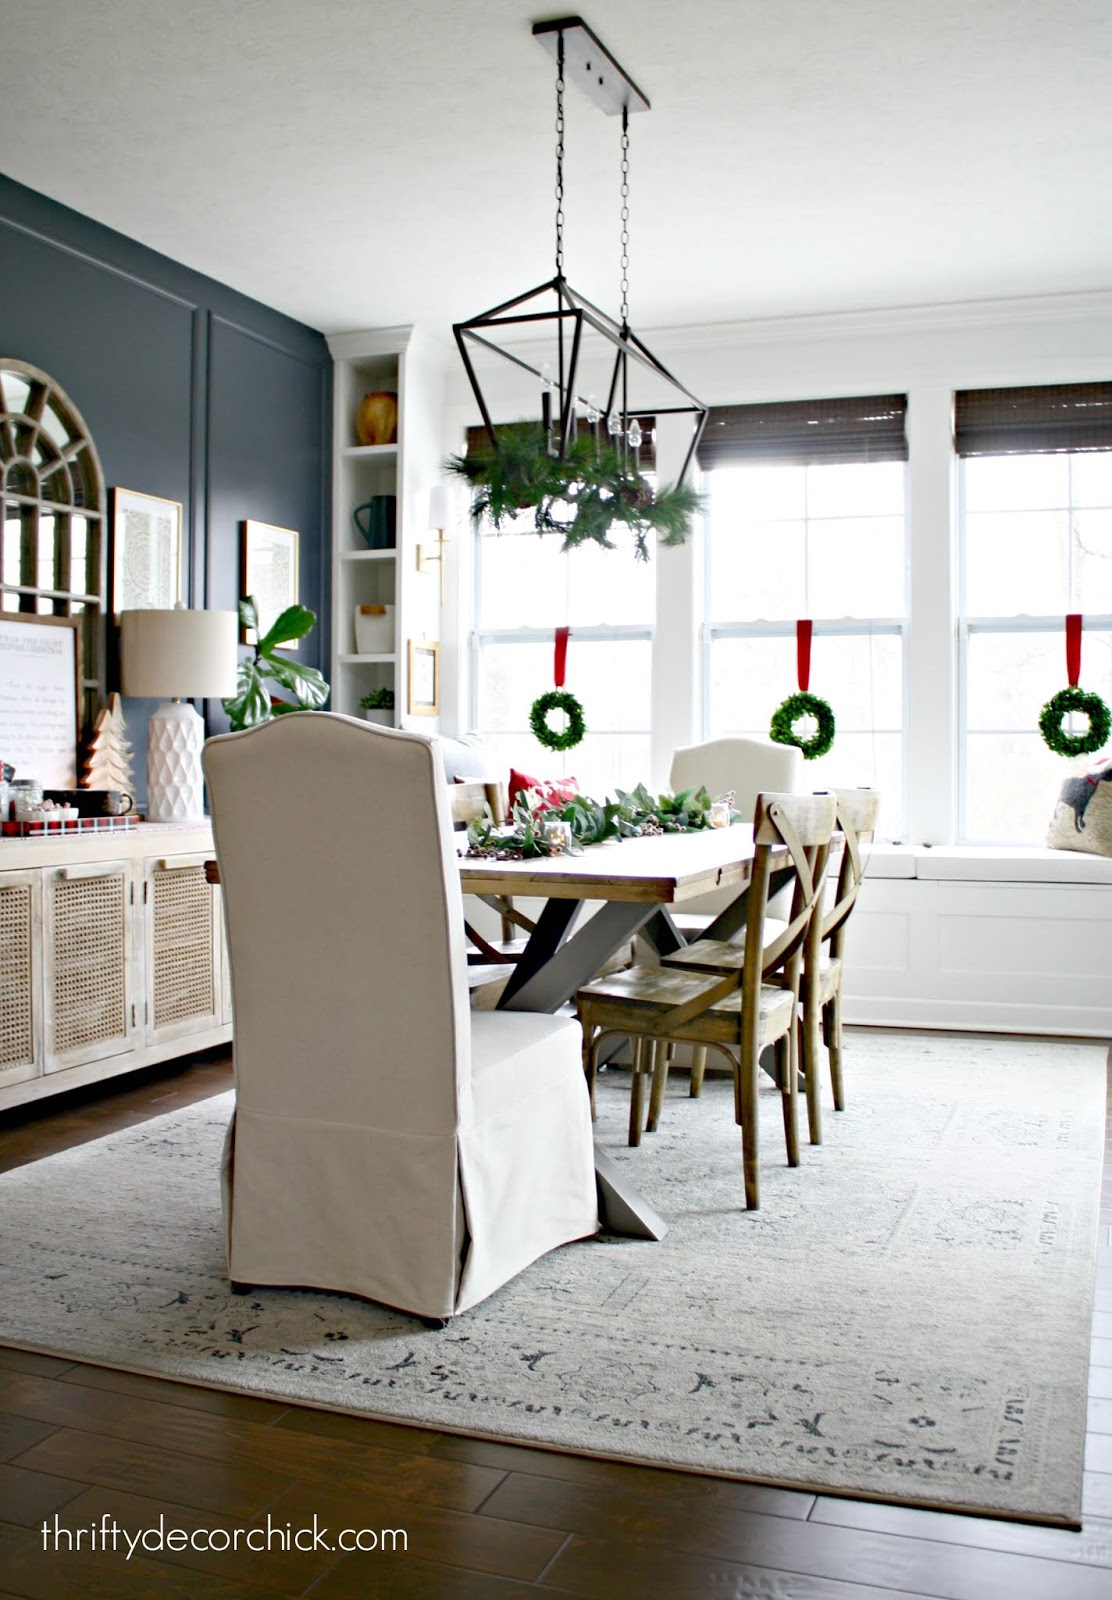 Open morning/dining room decor with window seat